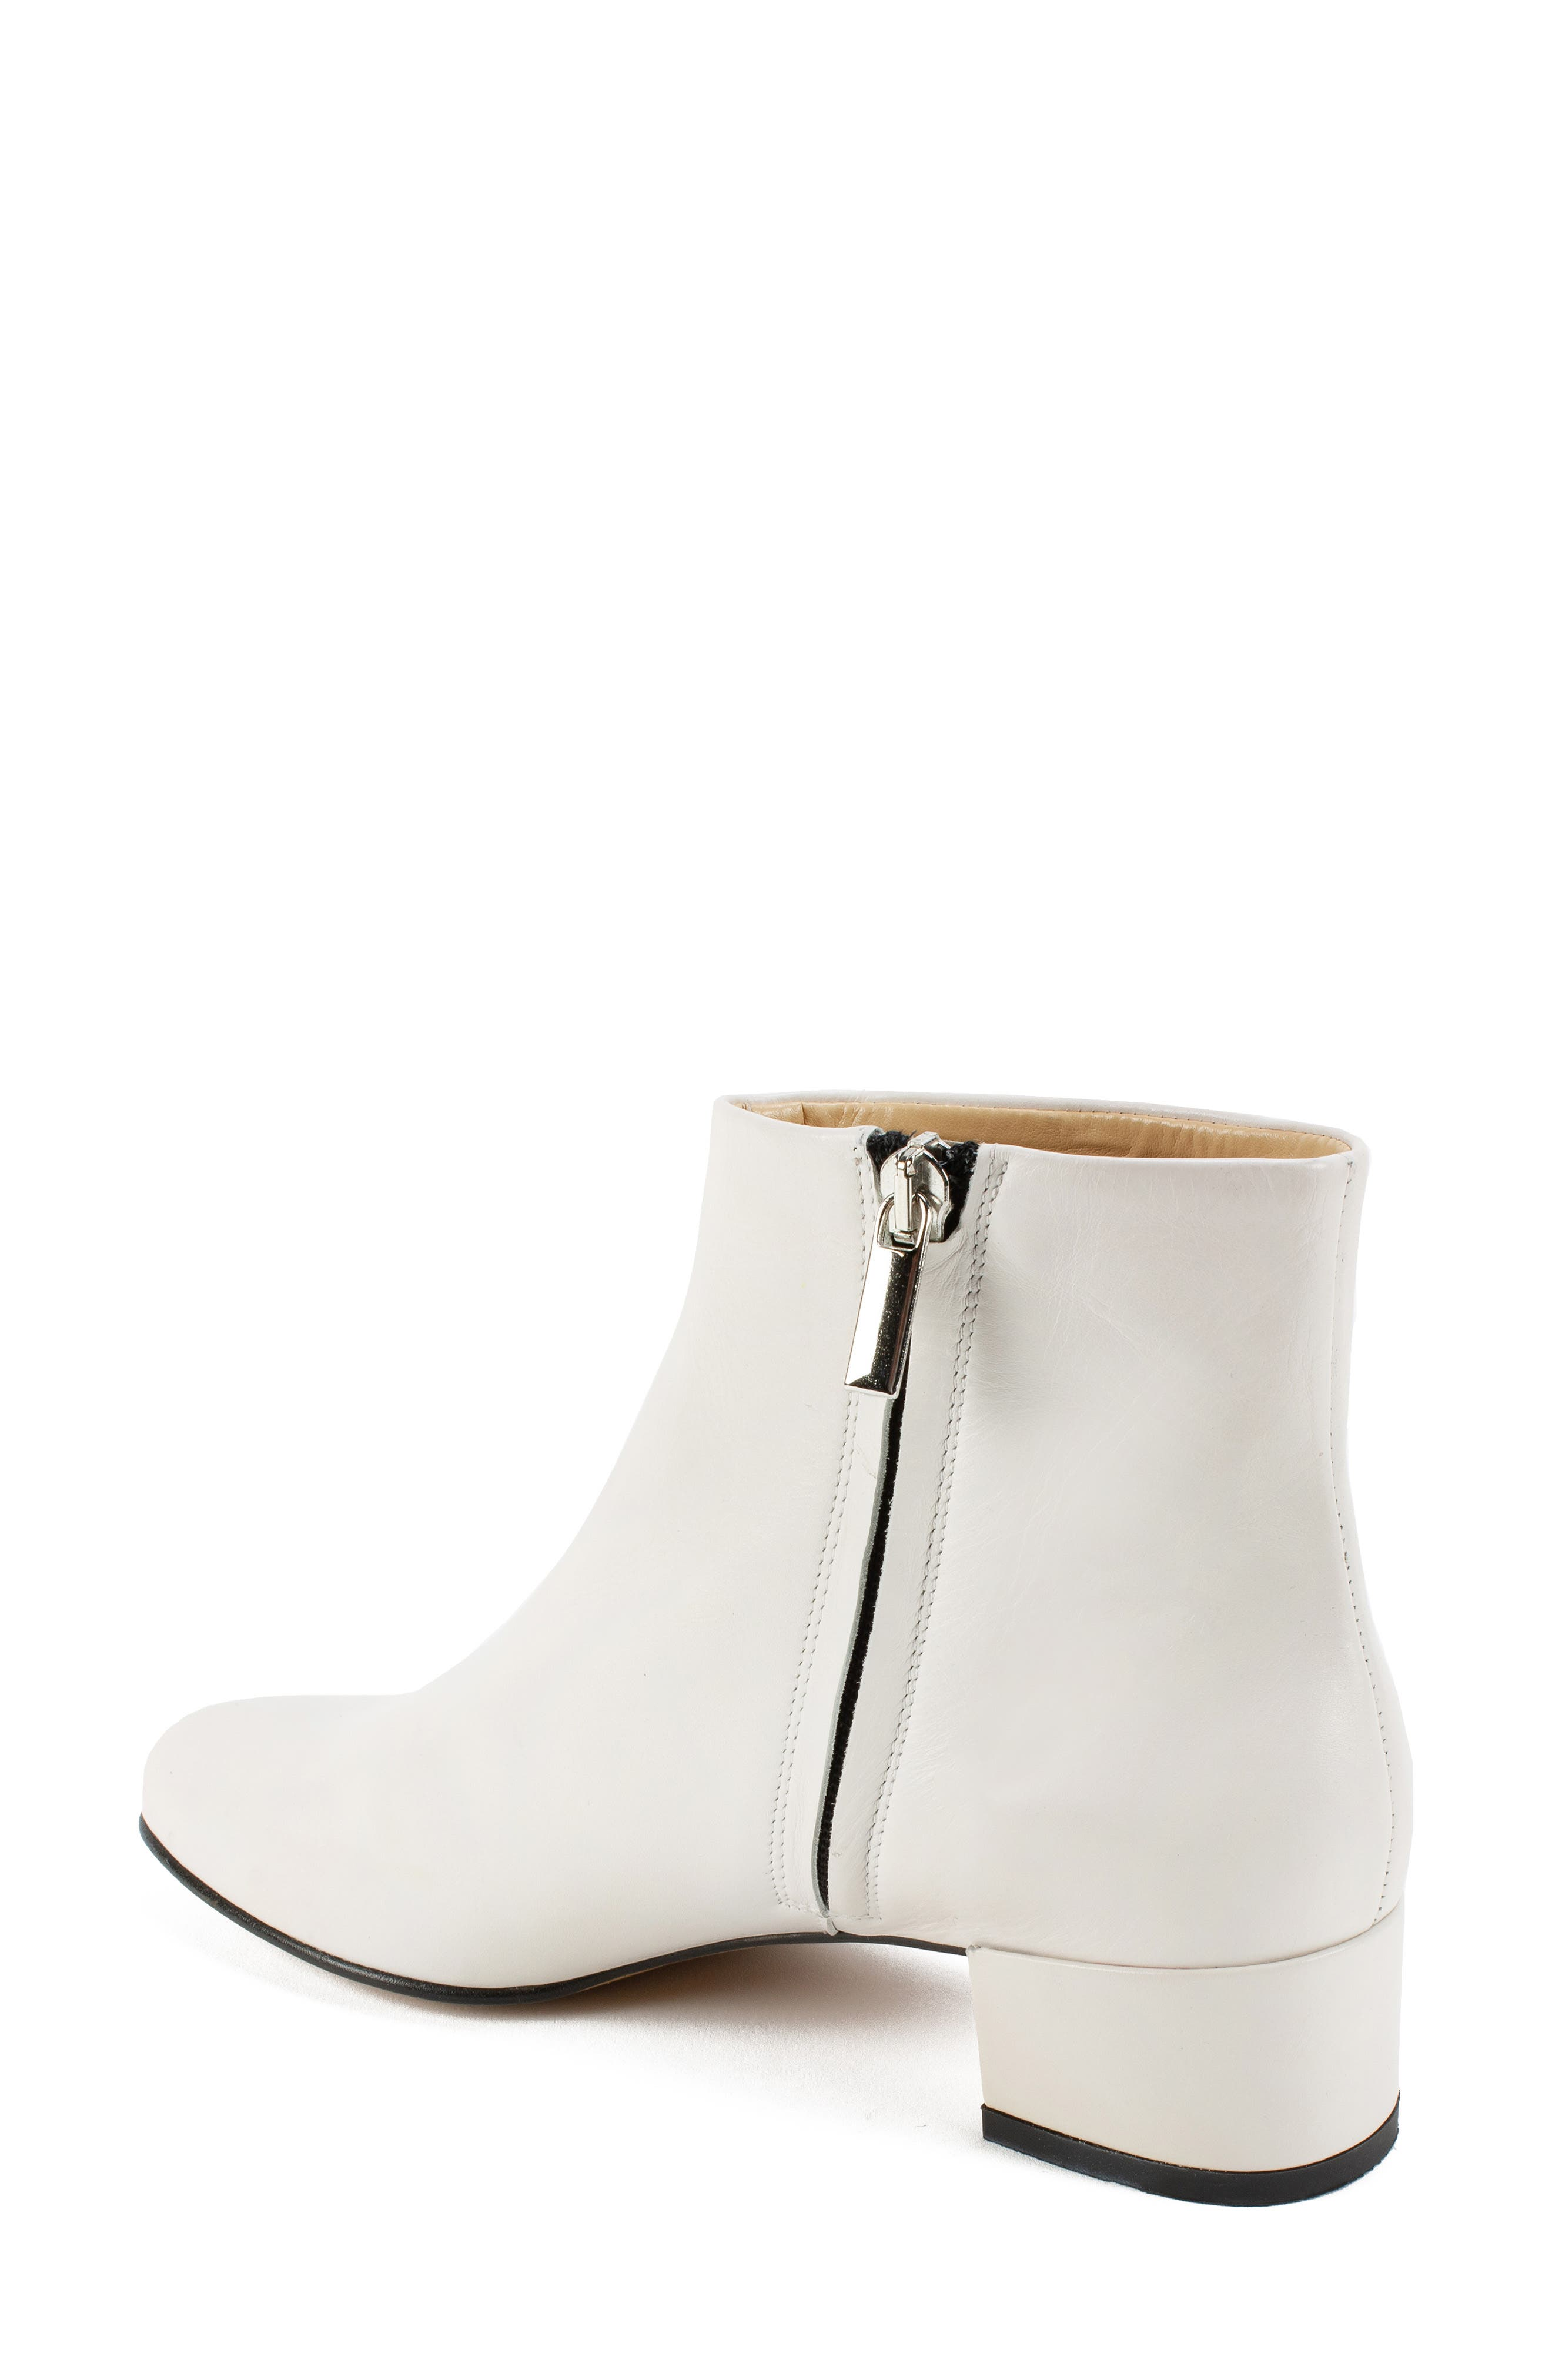 by White Mountain Jordie Block Heel Bootie,                             Alternate thumbnail 2, color,                             WHITE LEATHER